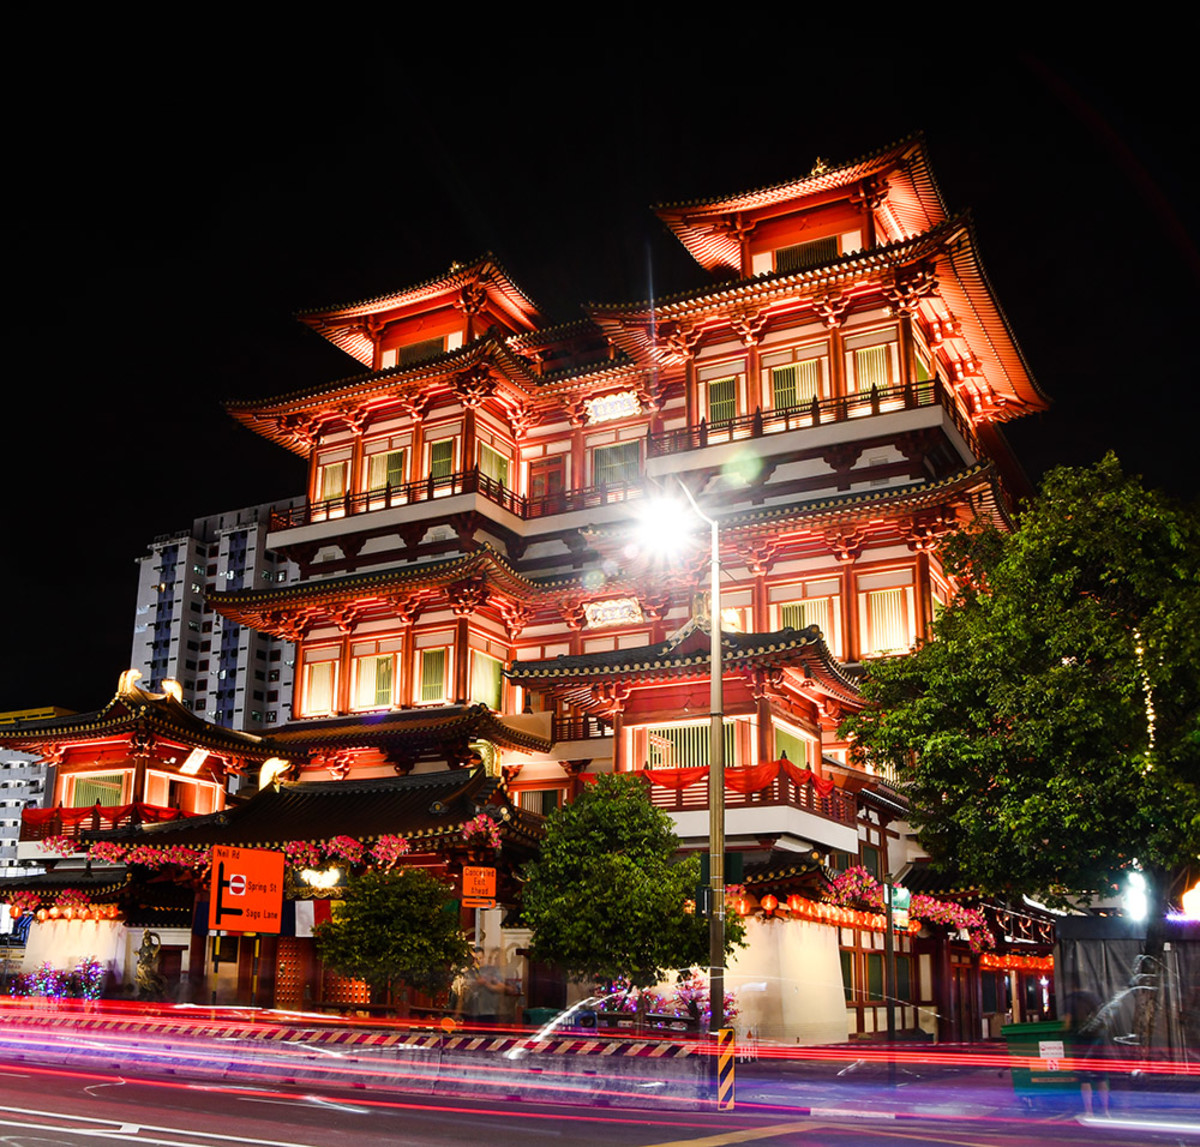 Top 10 Gorgeous Temples in Singapore You Should Not Miss | WanderWisdom